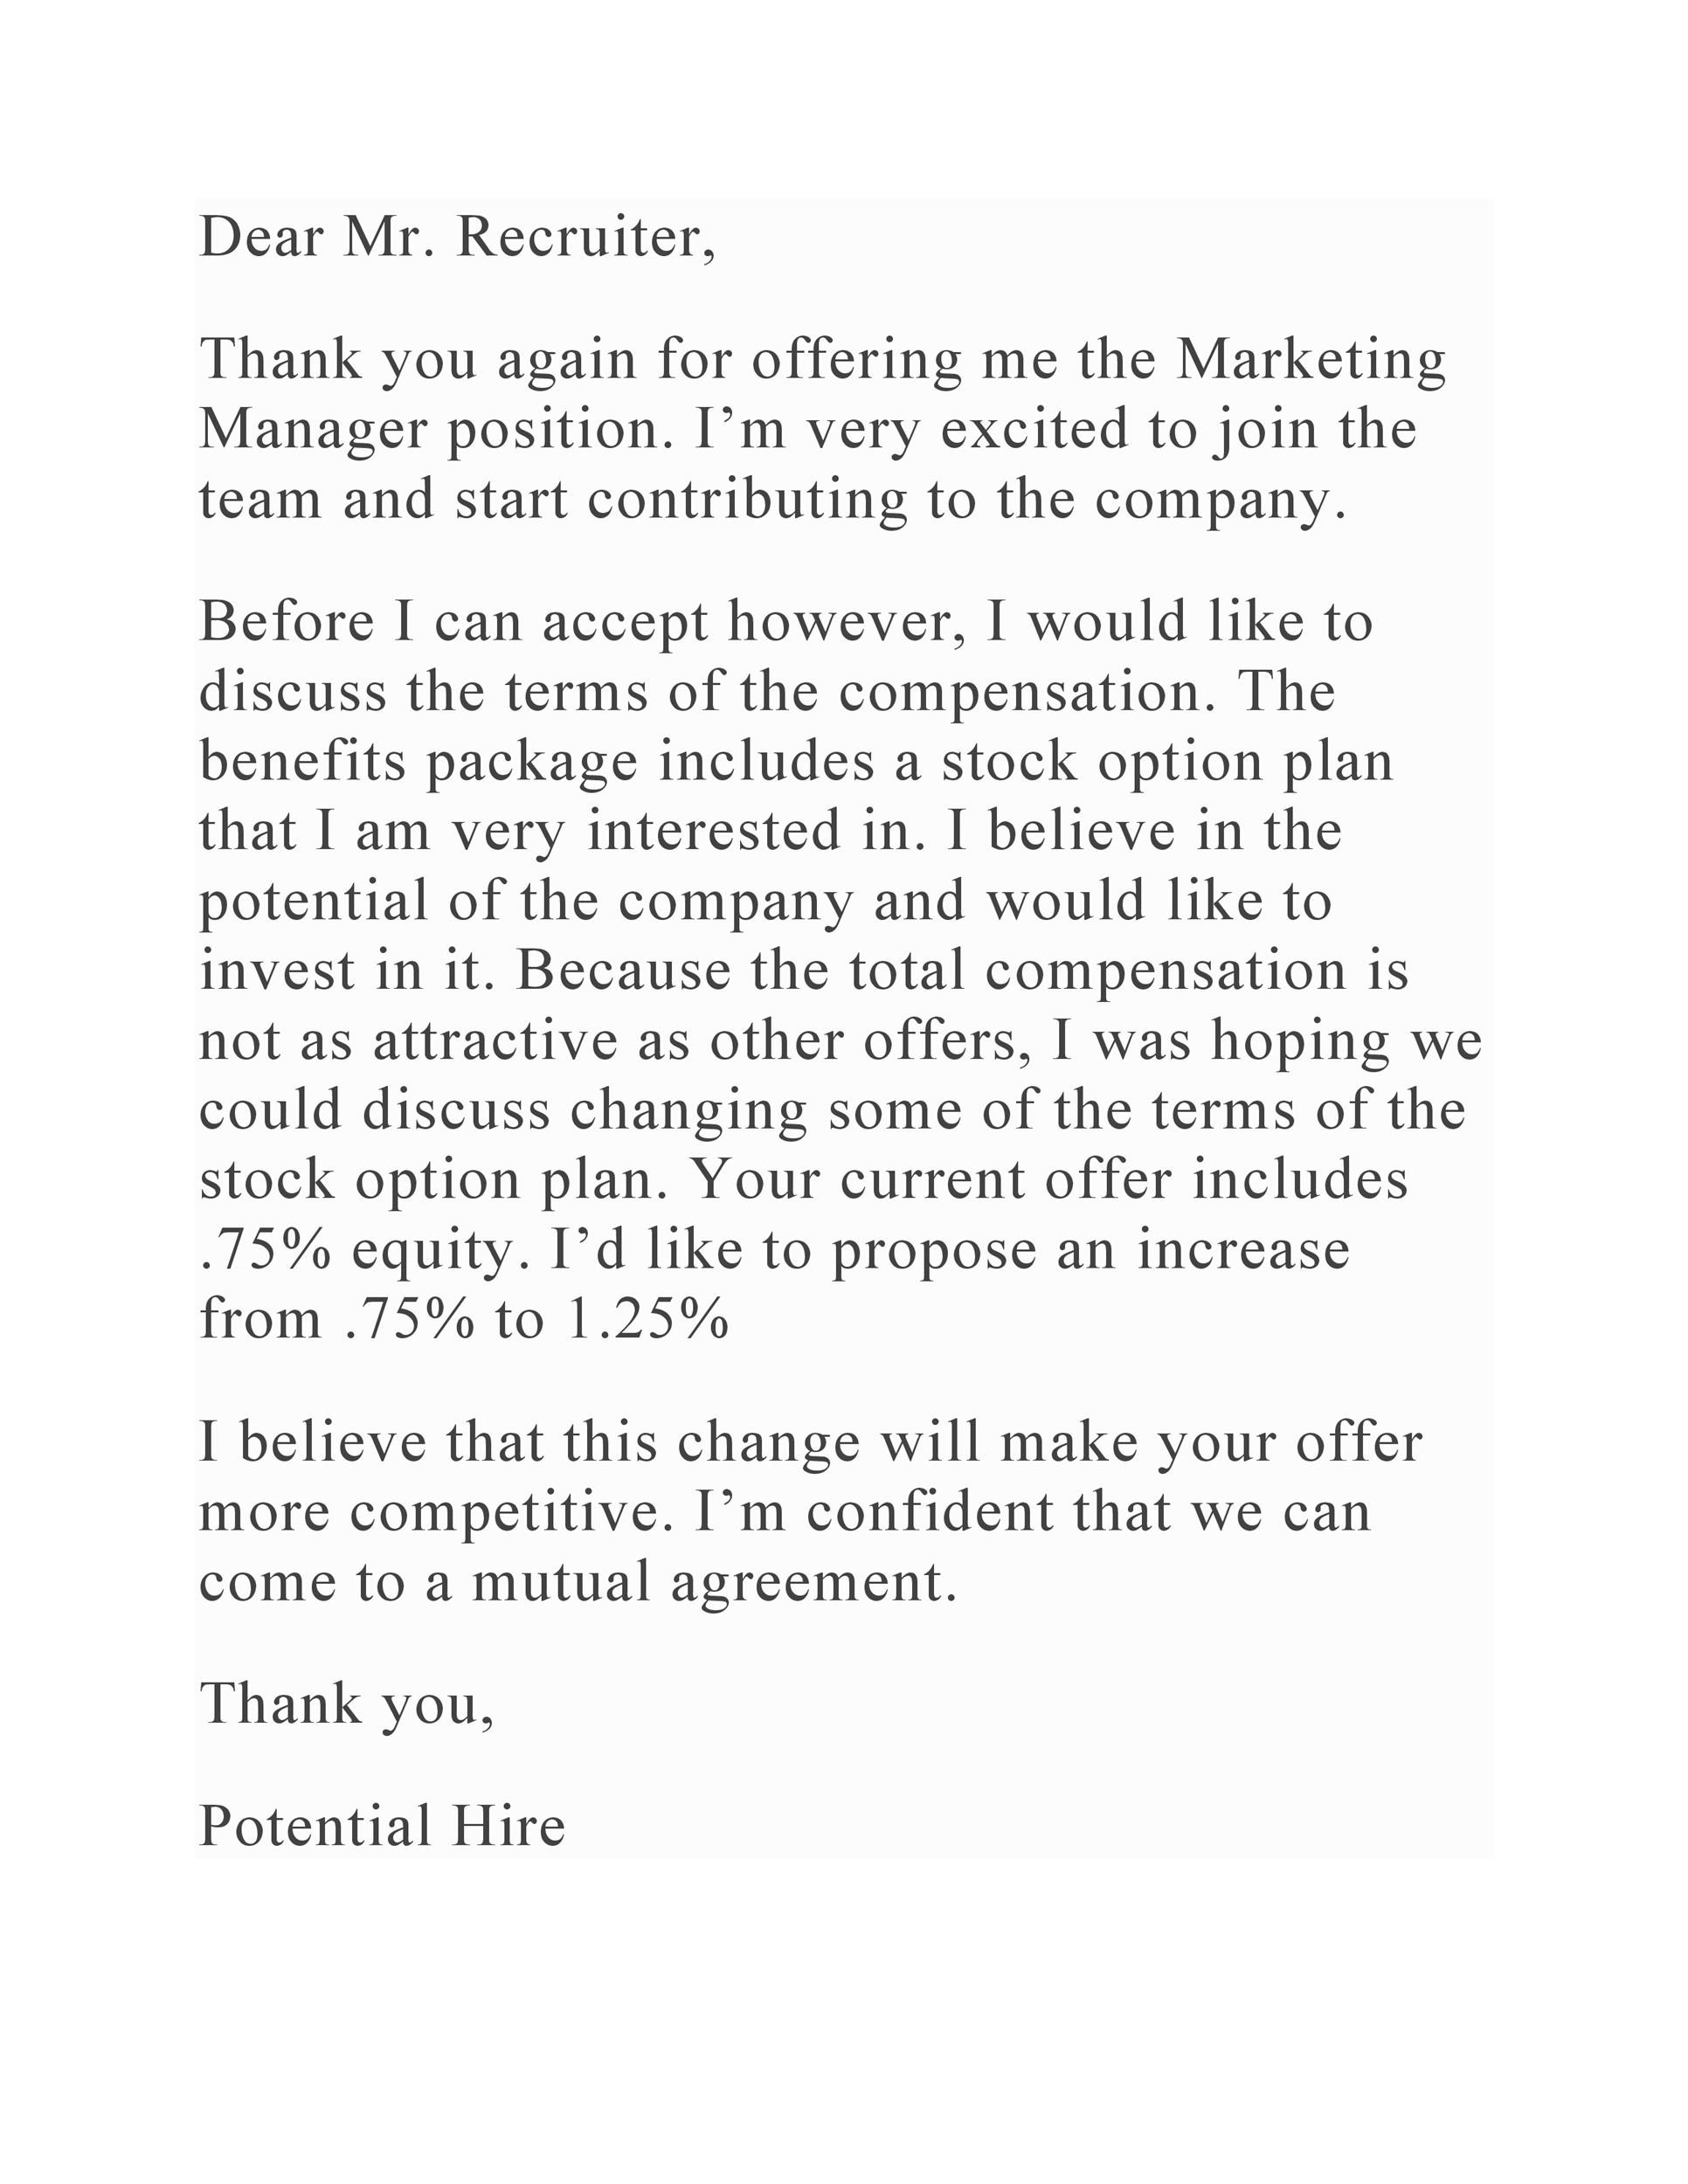 Free salary negotiation letter 15